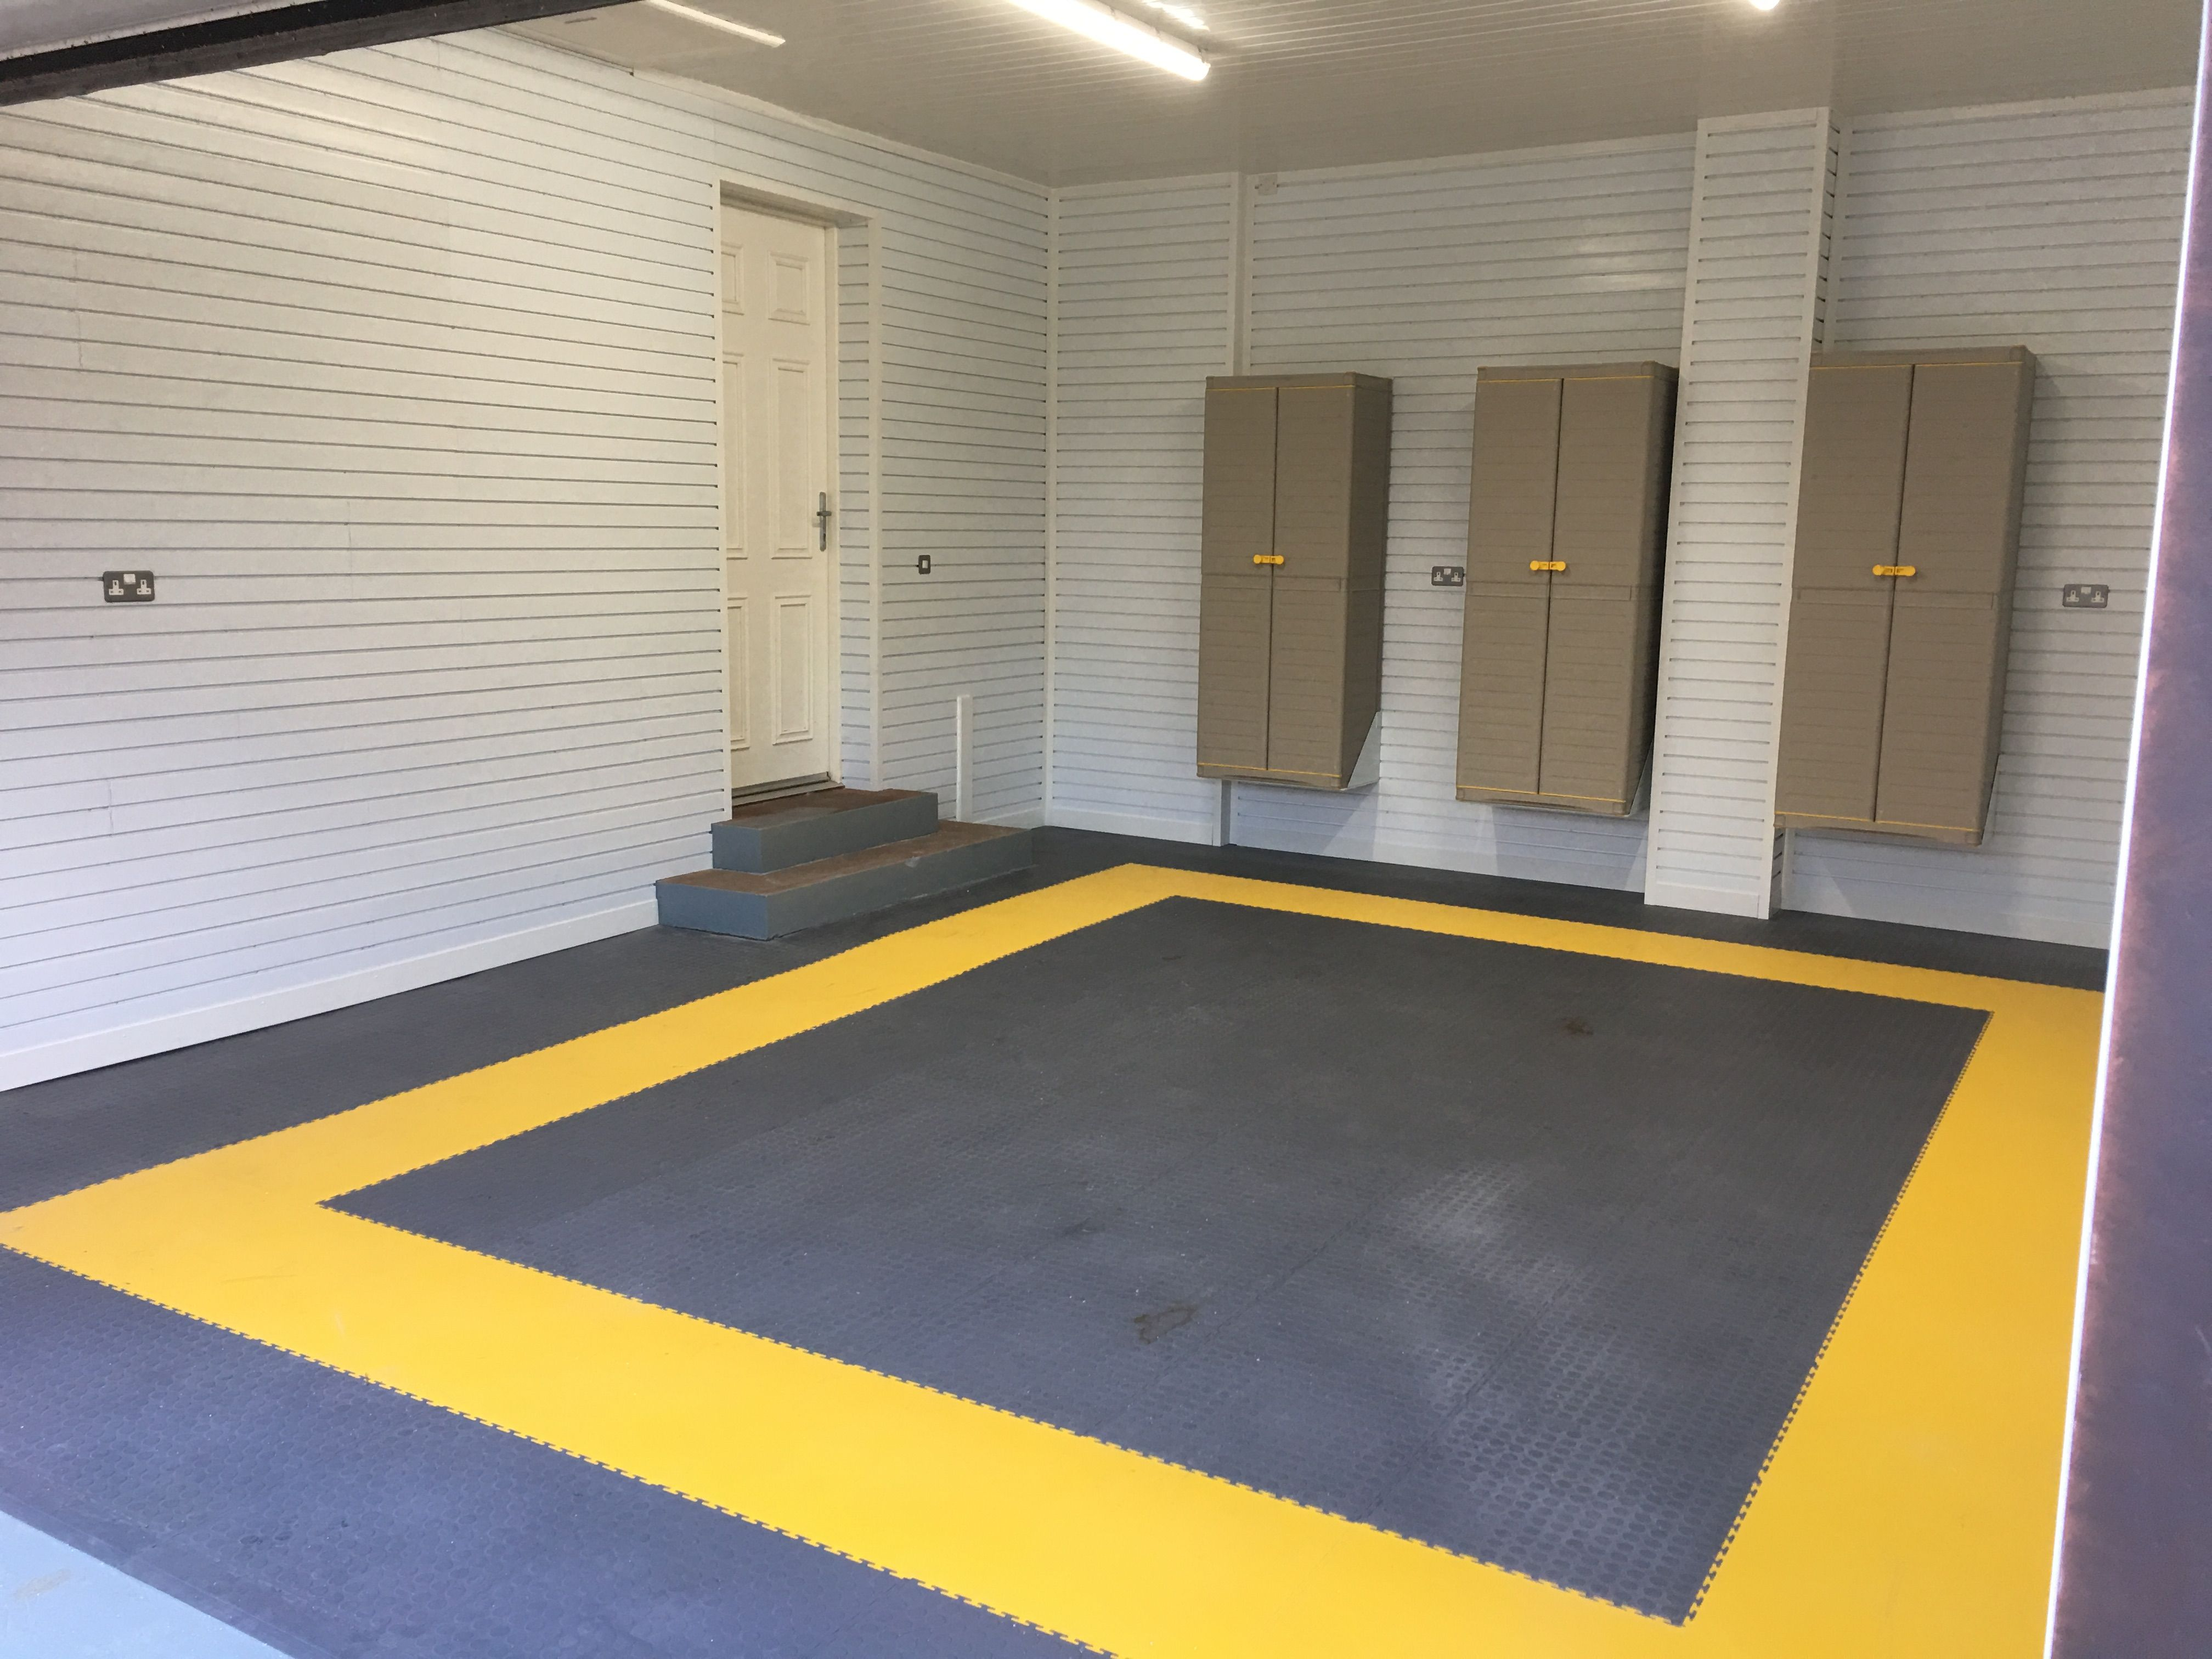 Dark grey floor tiles are very popular and can be combined with a dark grey floor tiles are very popular and can be combined with a yellow border to dailygadgetfo Images